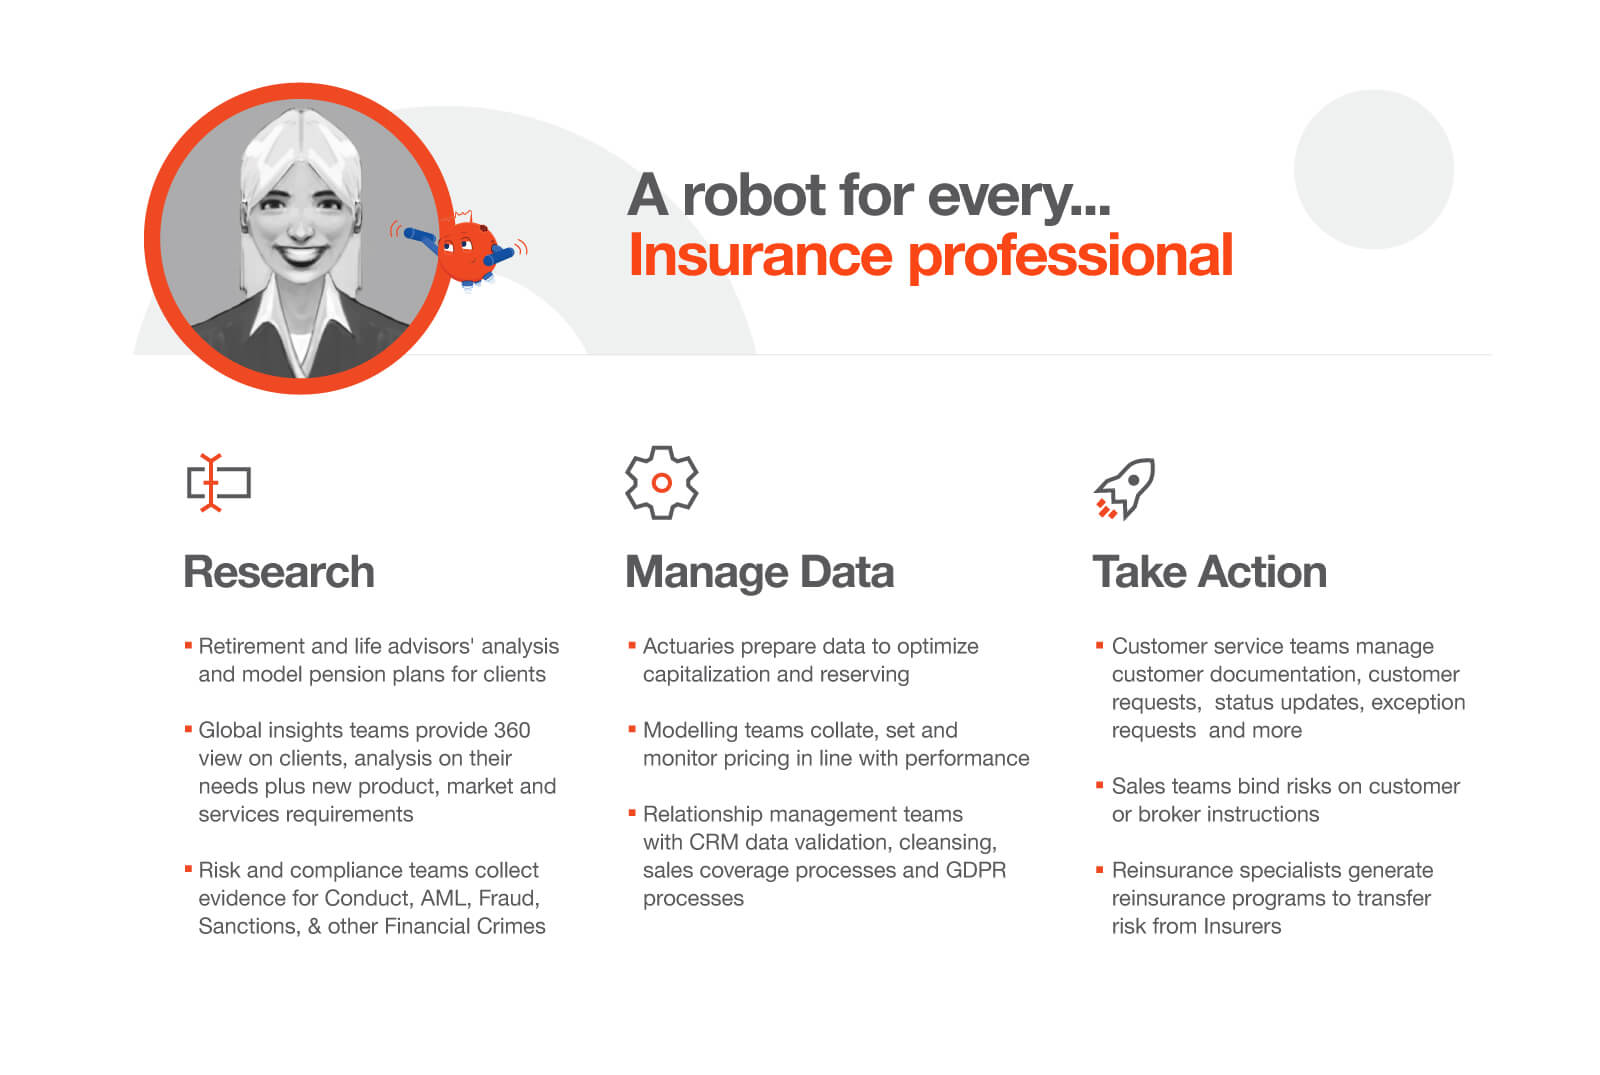 insurance-professional-robot-use-case-example